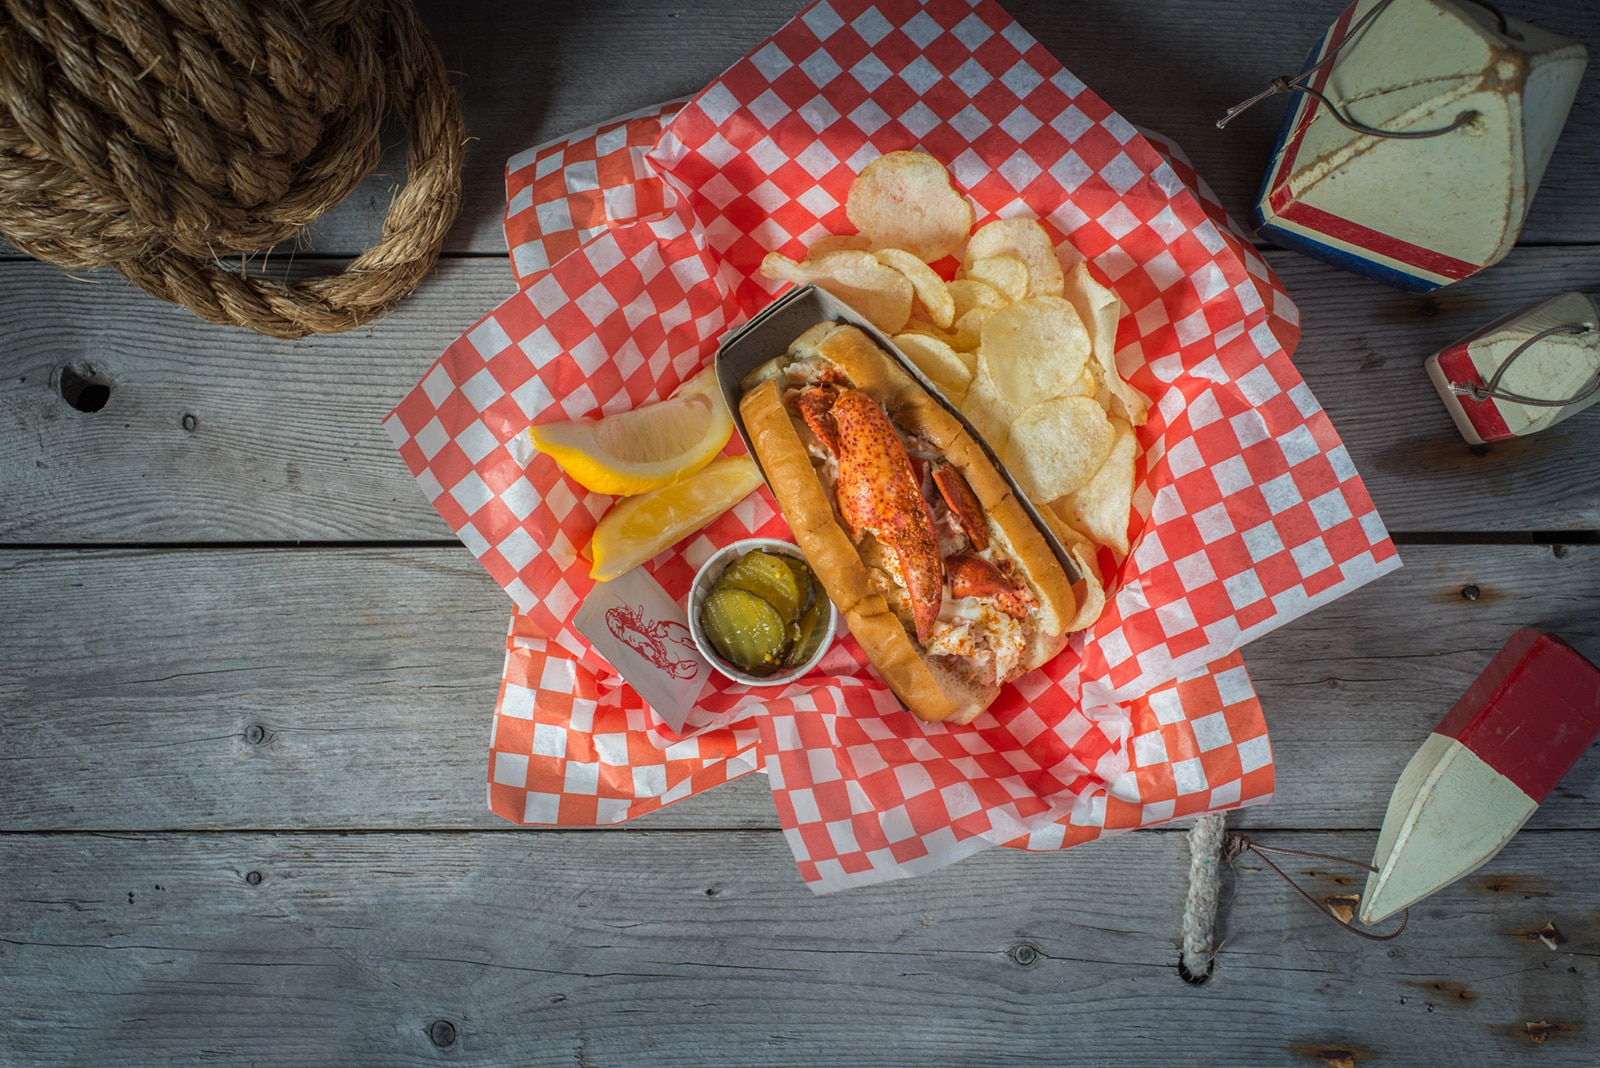 Colville Bay Oysters, The Lobster Shack Lobster Roll